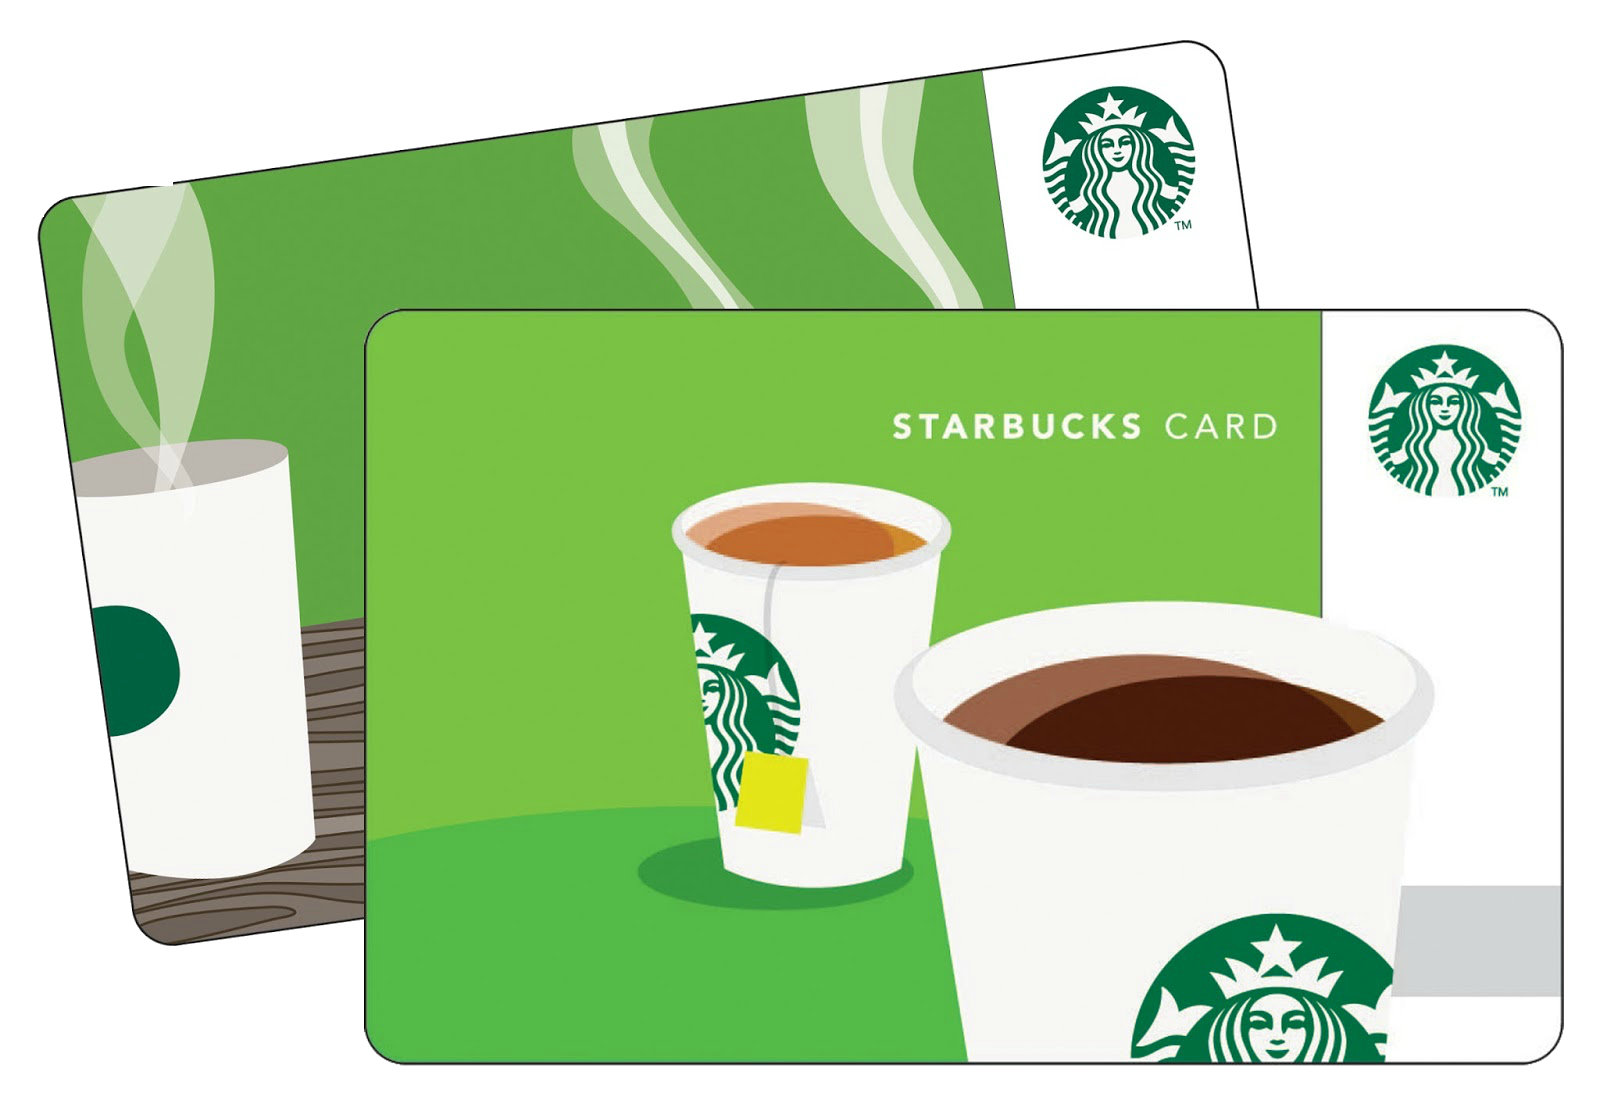 How To Check Starbucks Gift Card Balance At www.starbucks.com Complete Step By Step Guide